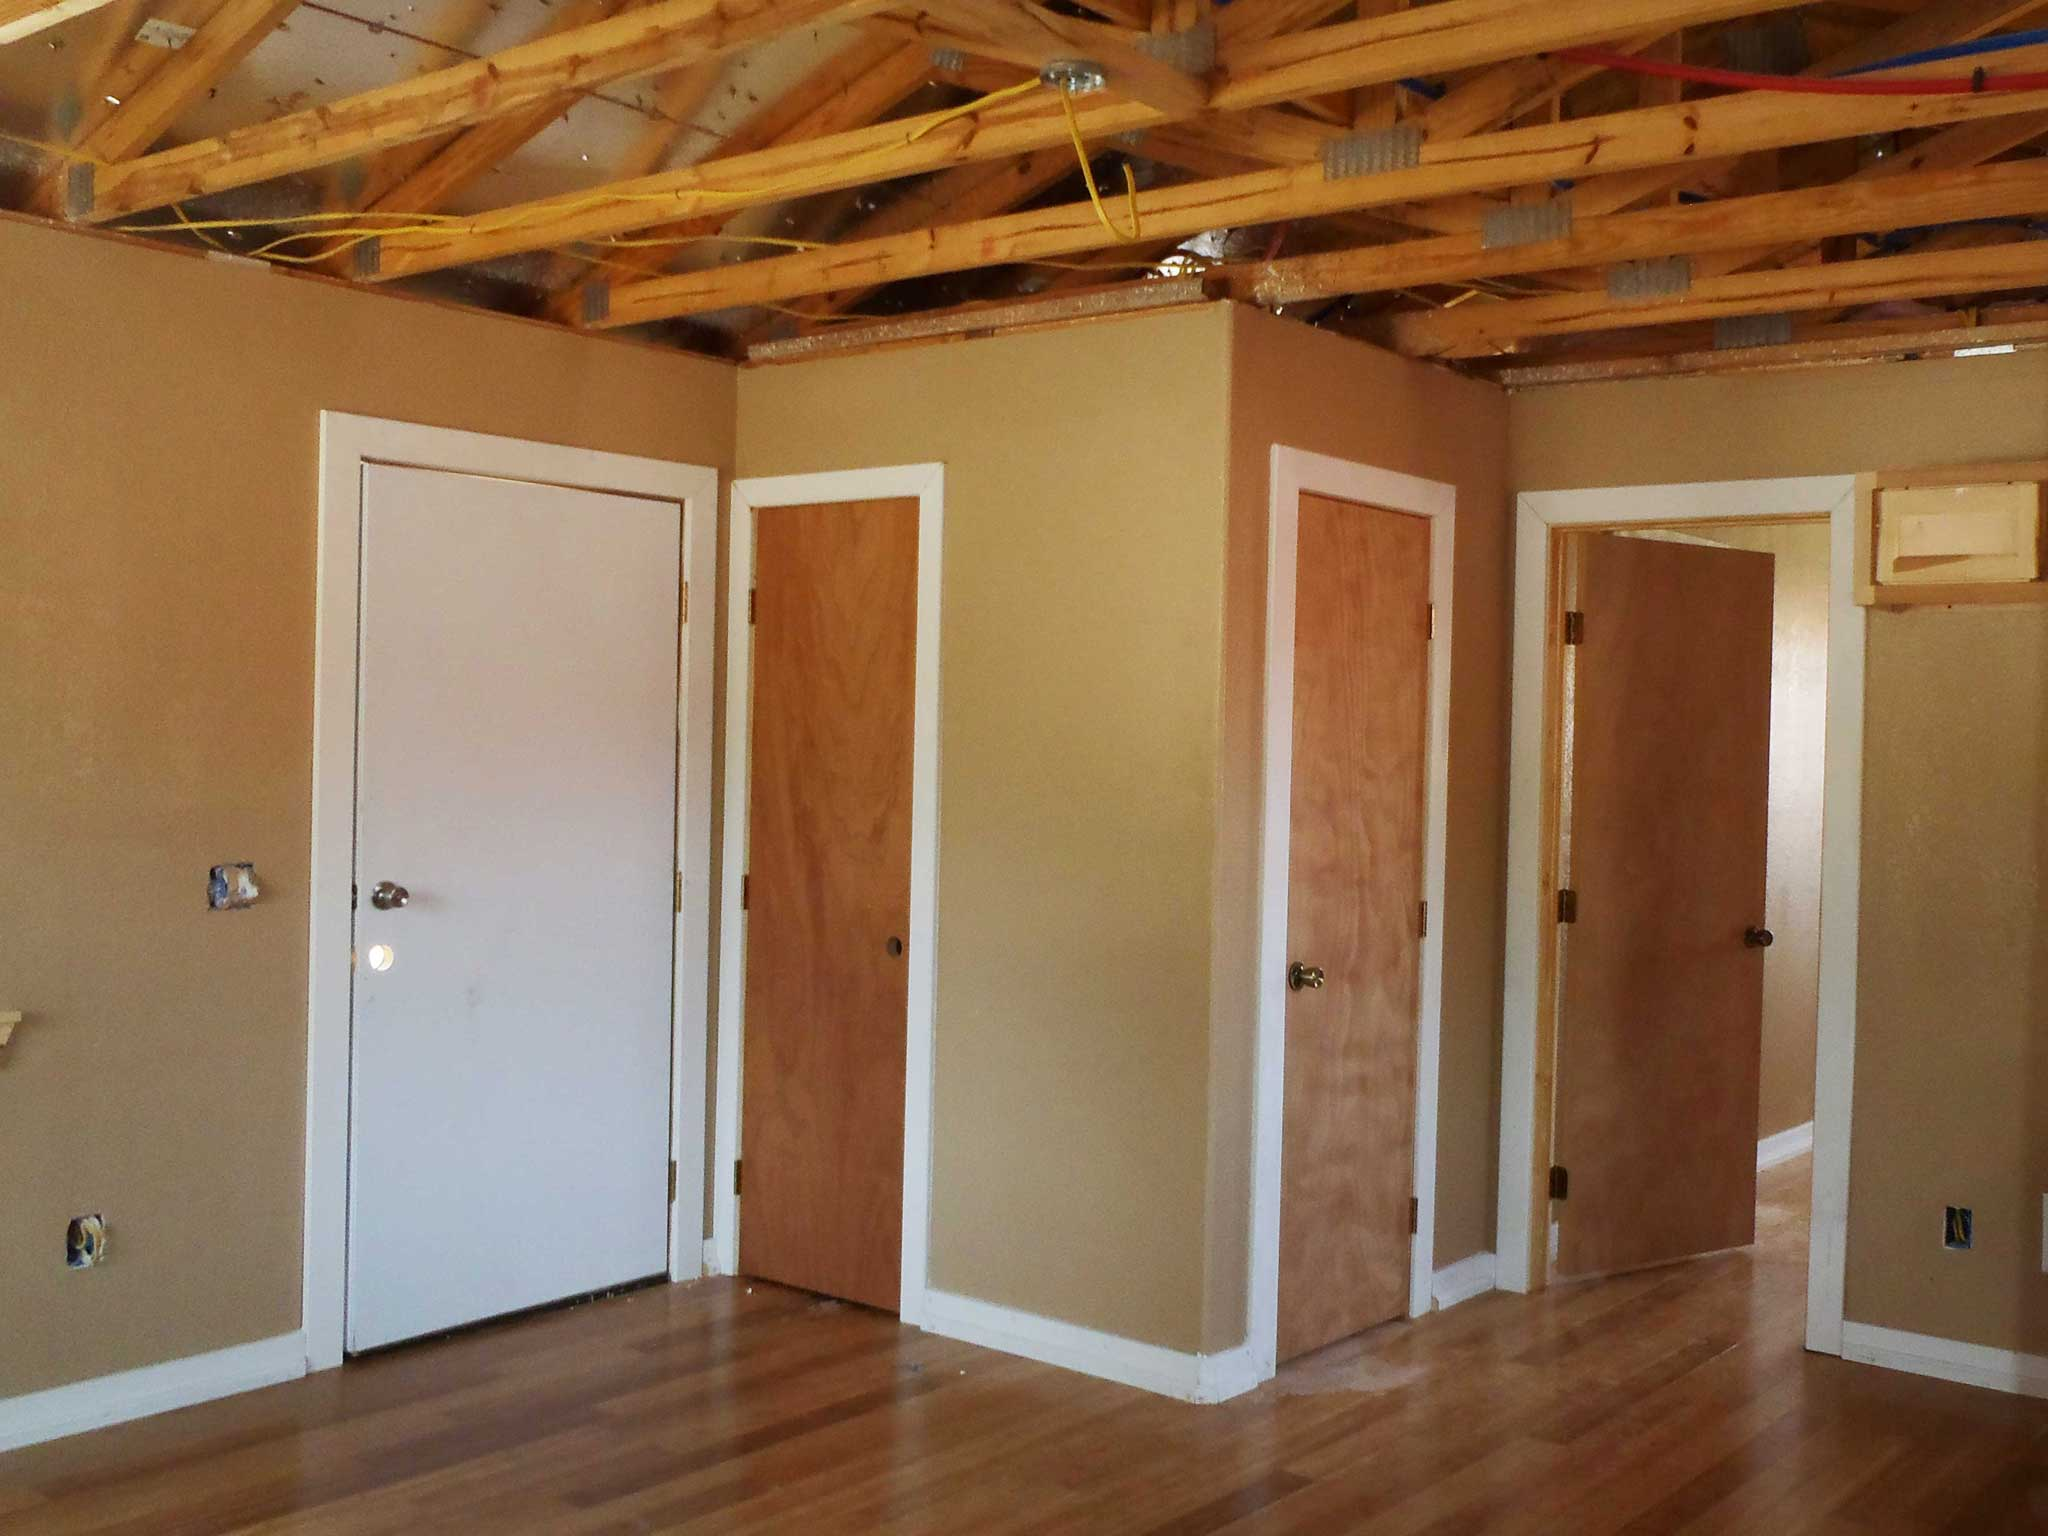 finished bldg interior doors from living area